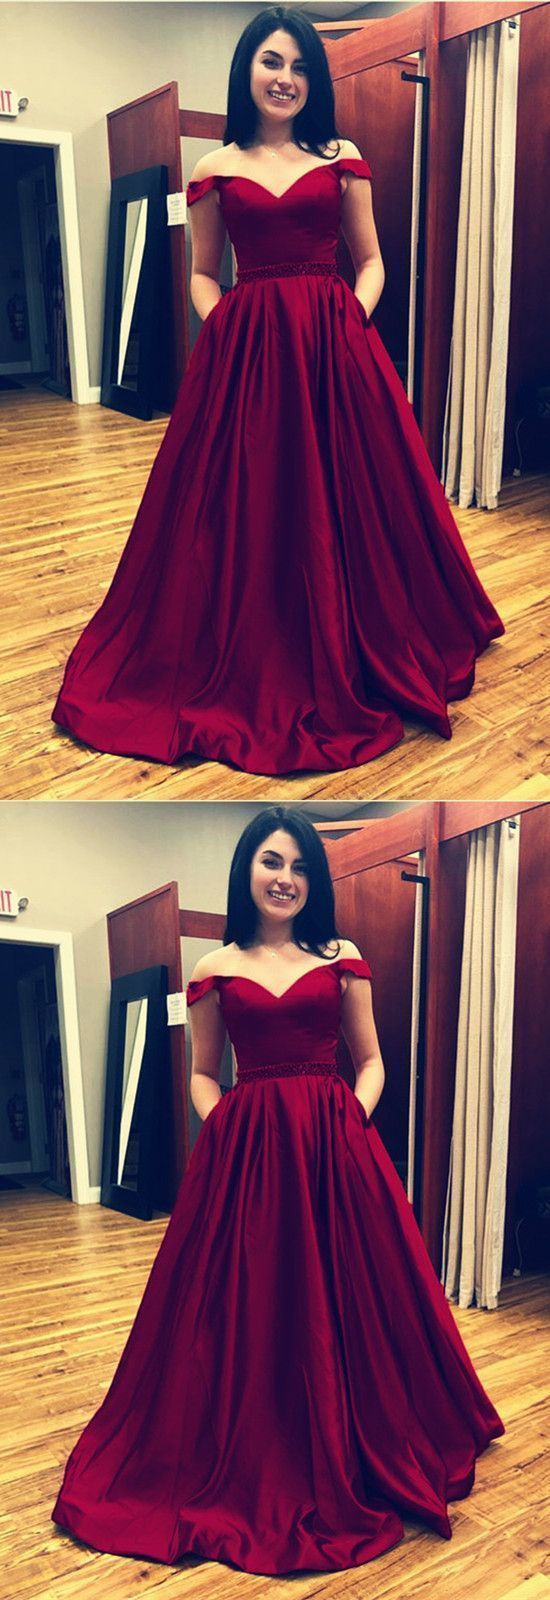 Off the shoulder long prom dress fashion pageant dress school